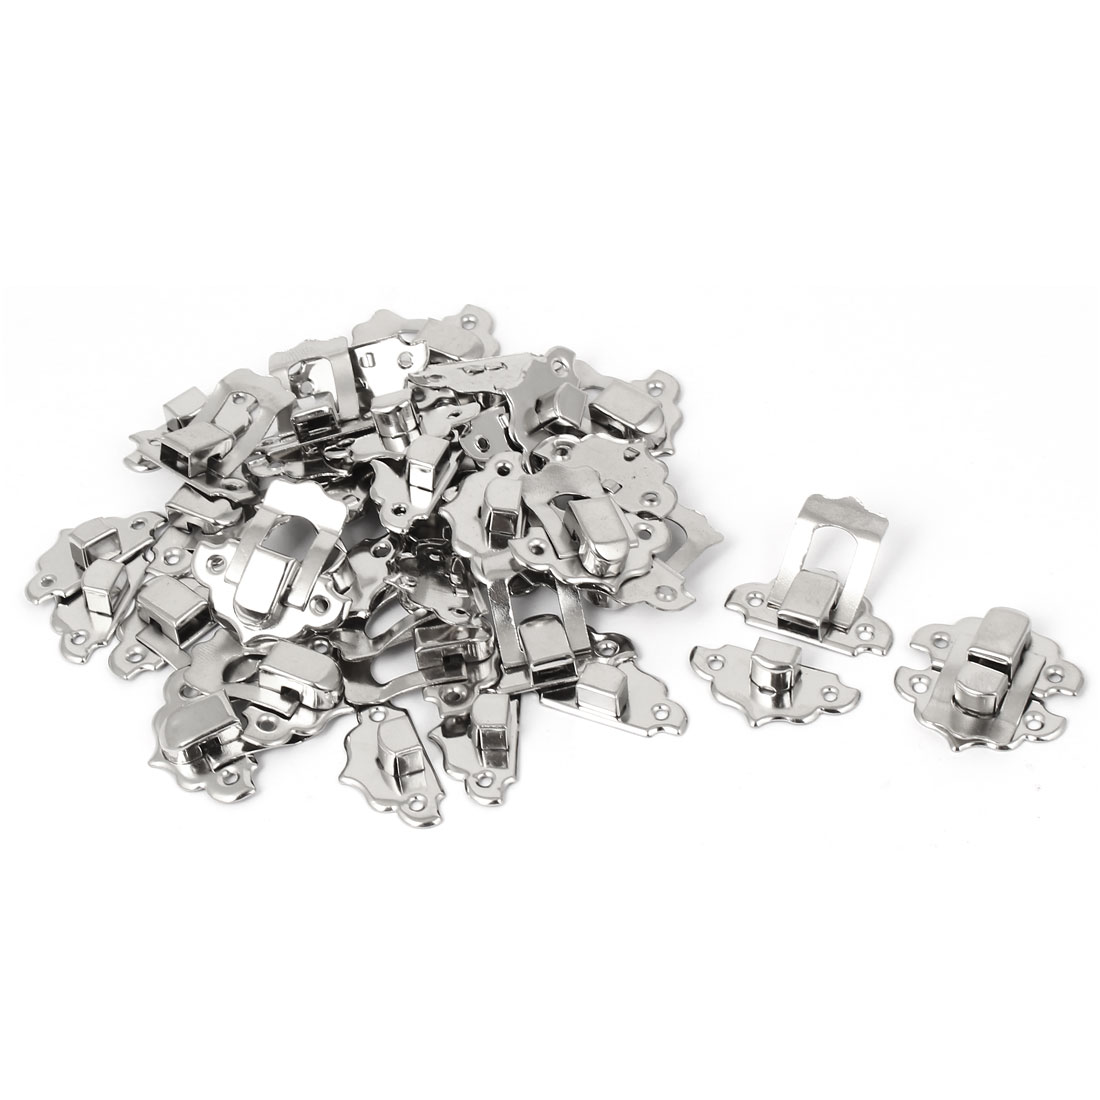 Toolbox Jewelry Gift Box Case Metal Clasp Hasp Latch Catch Silver Tone 20pcs